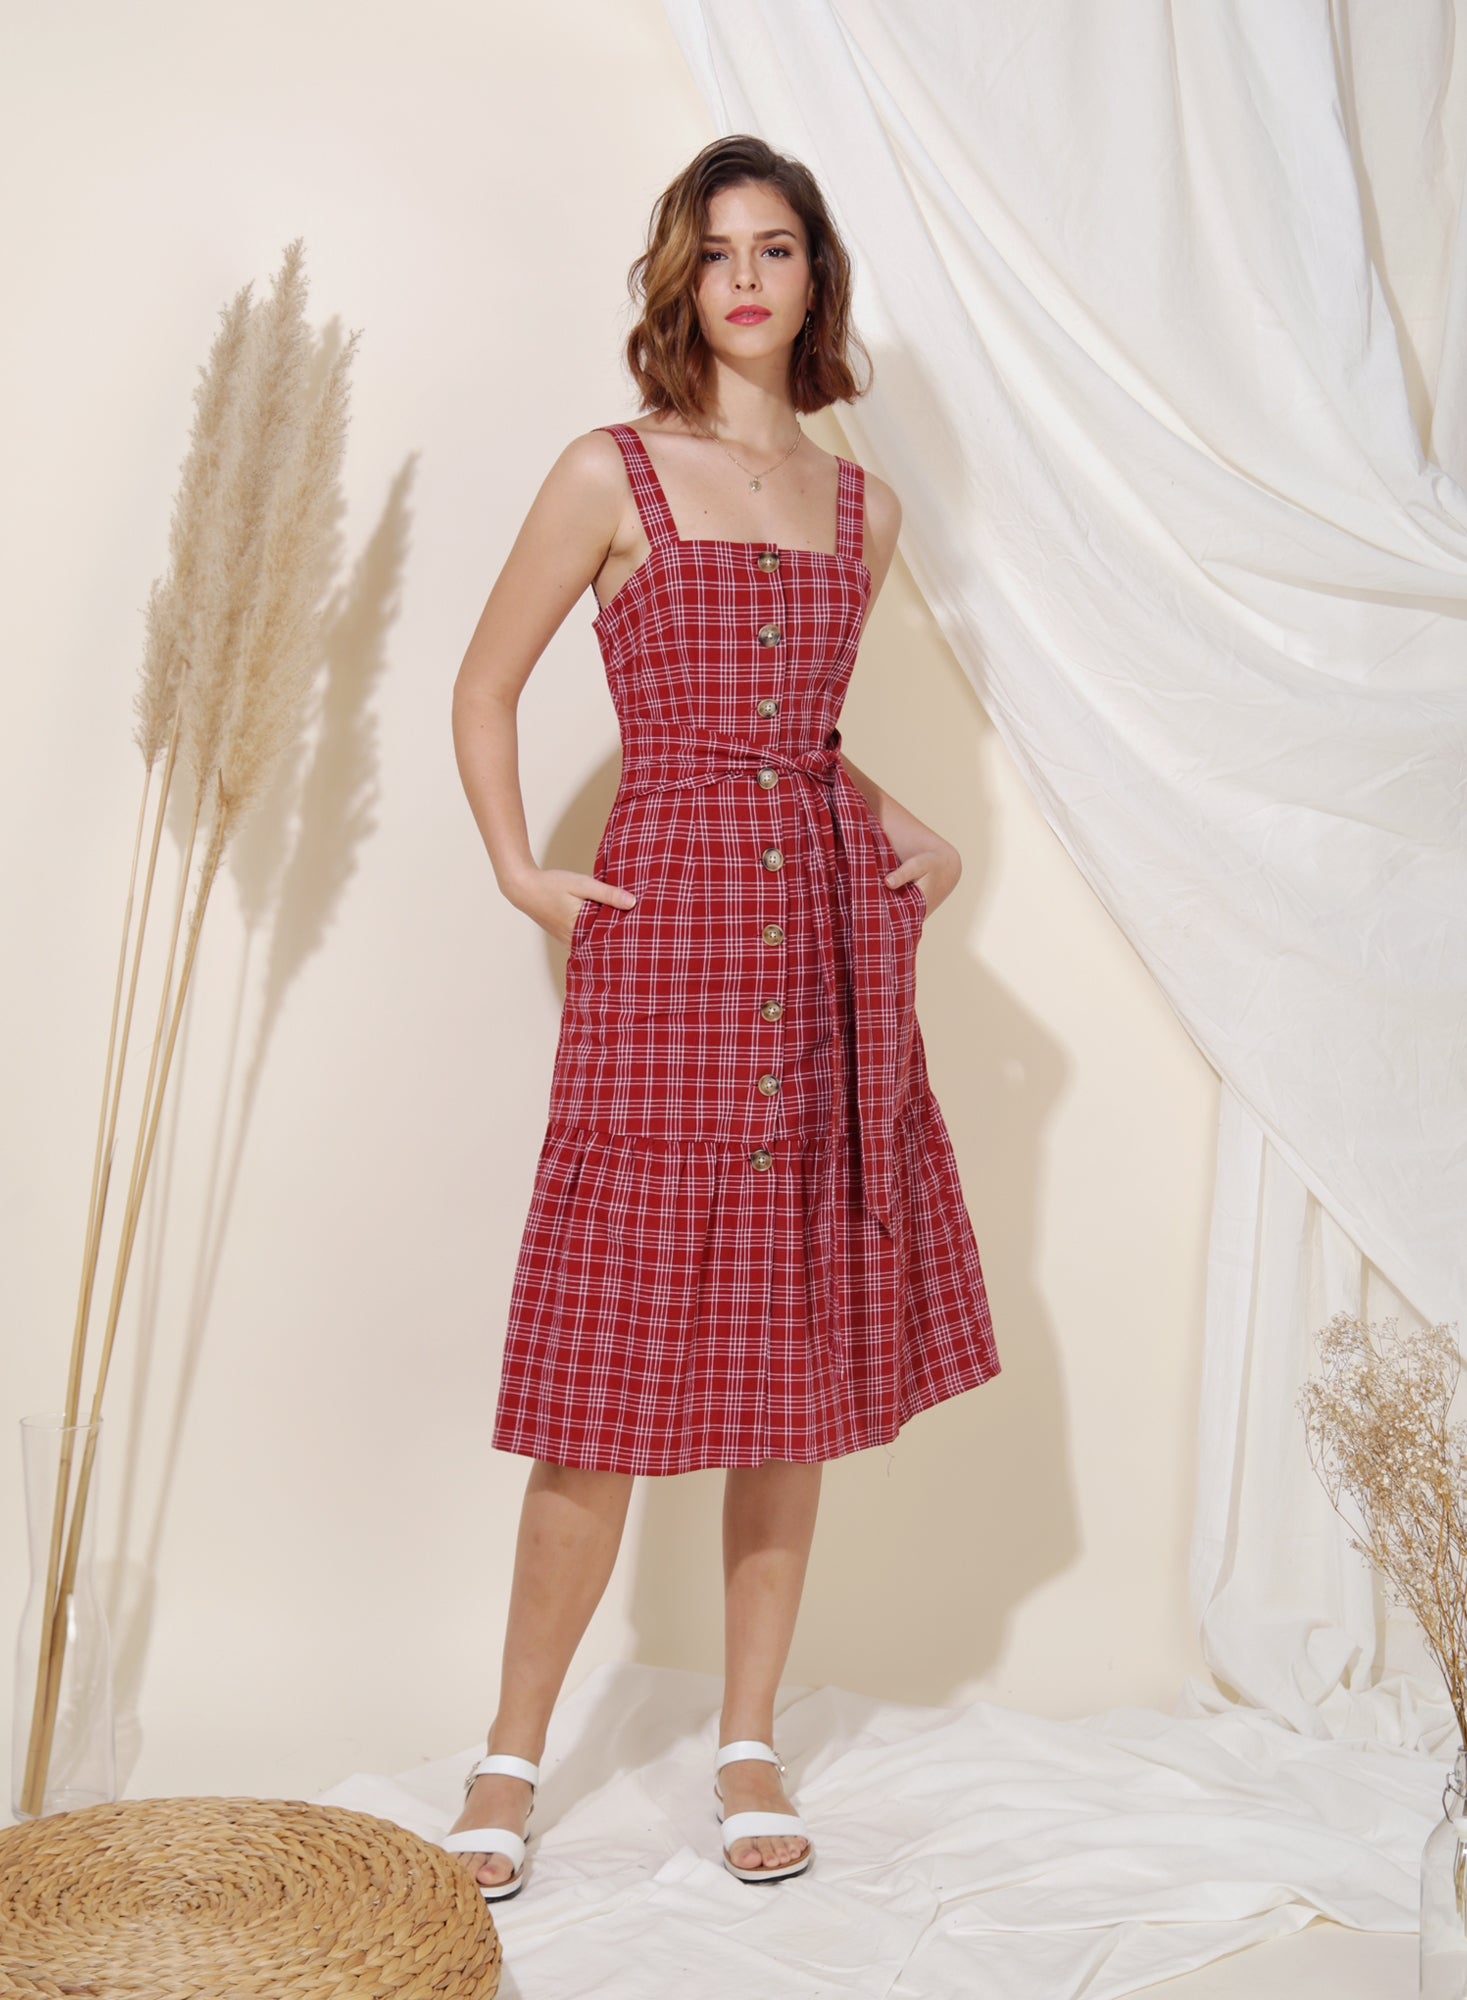 Infinity Button Down Checks Dress (Cherry) at $ 45.00 only sold at And Well Dressed Online Fashion Store Singapore